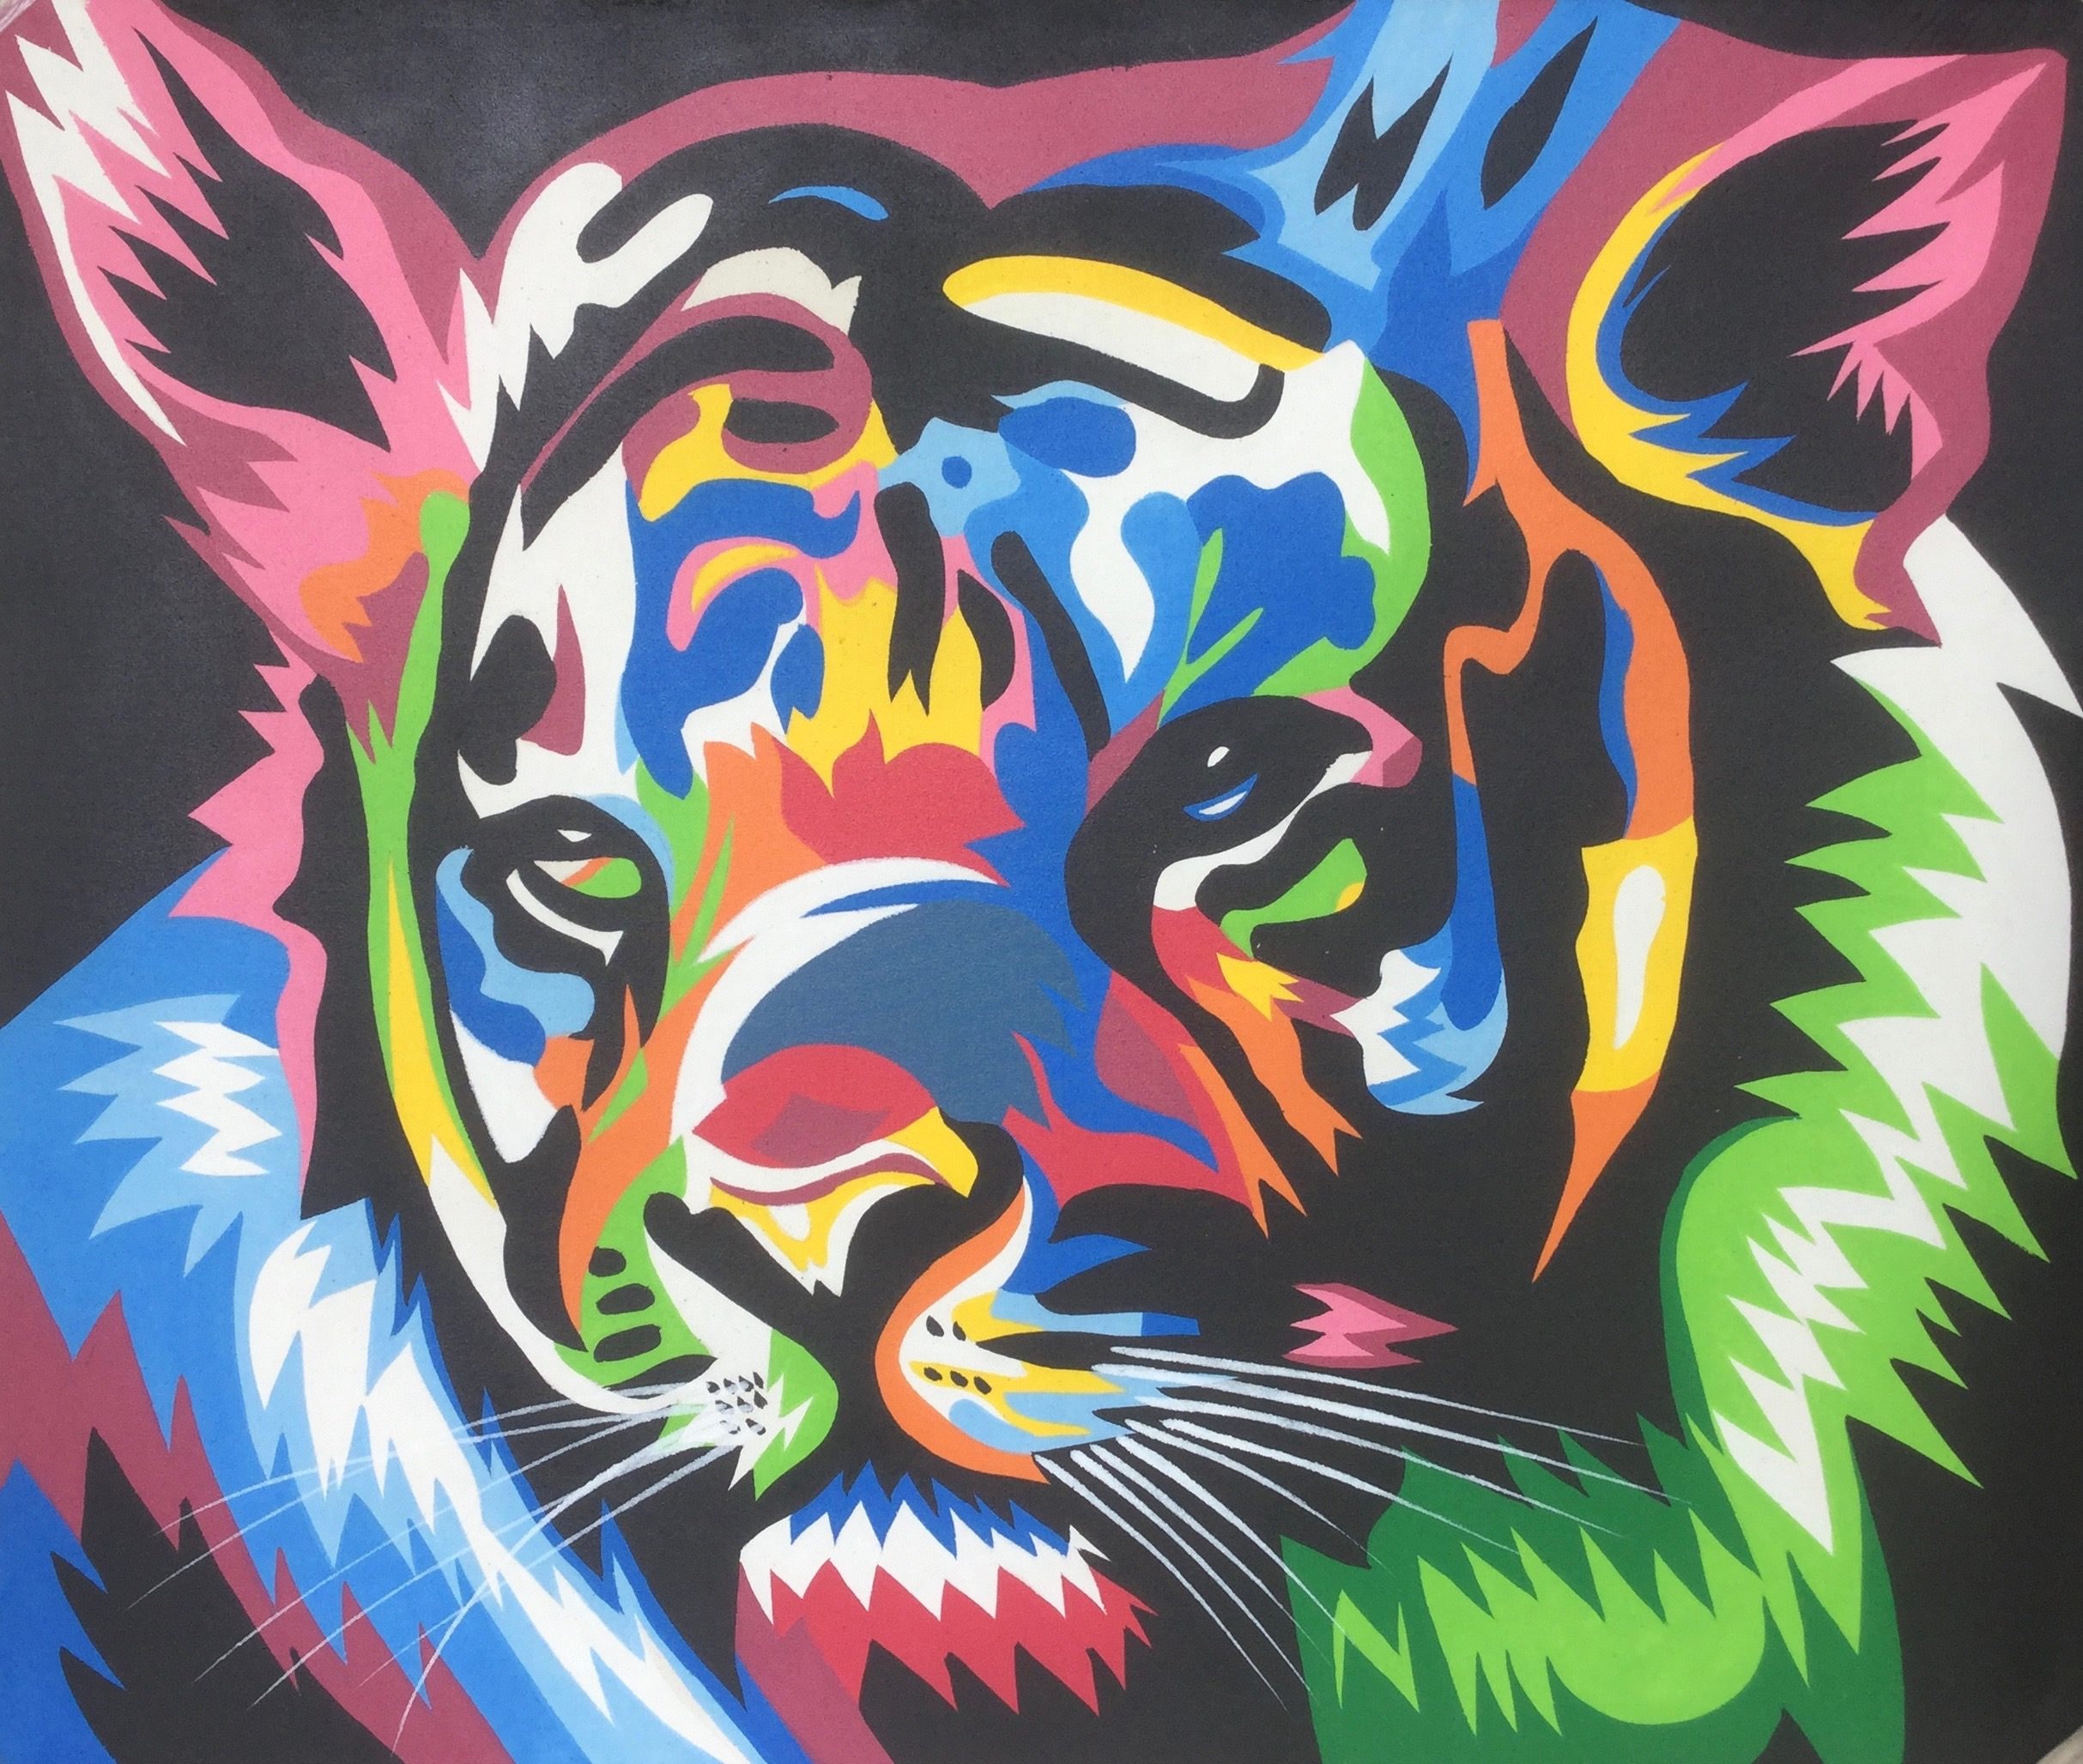 colorful animal painting 7090cap006 公式 goes windy dream